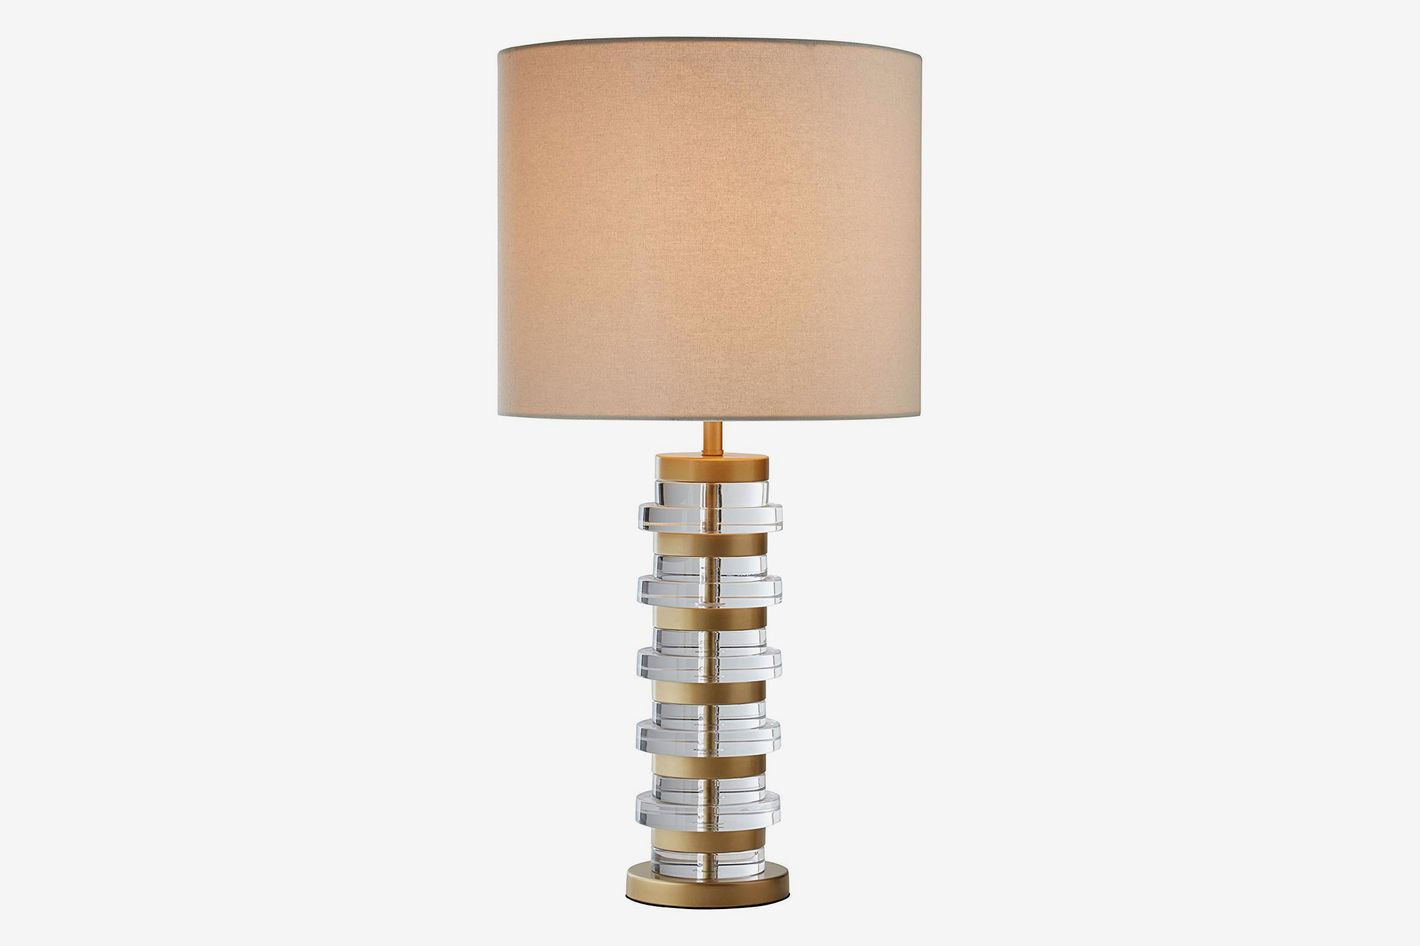 Rivet Modern Brass-Trimmed Table Lamp with Bulb